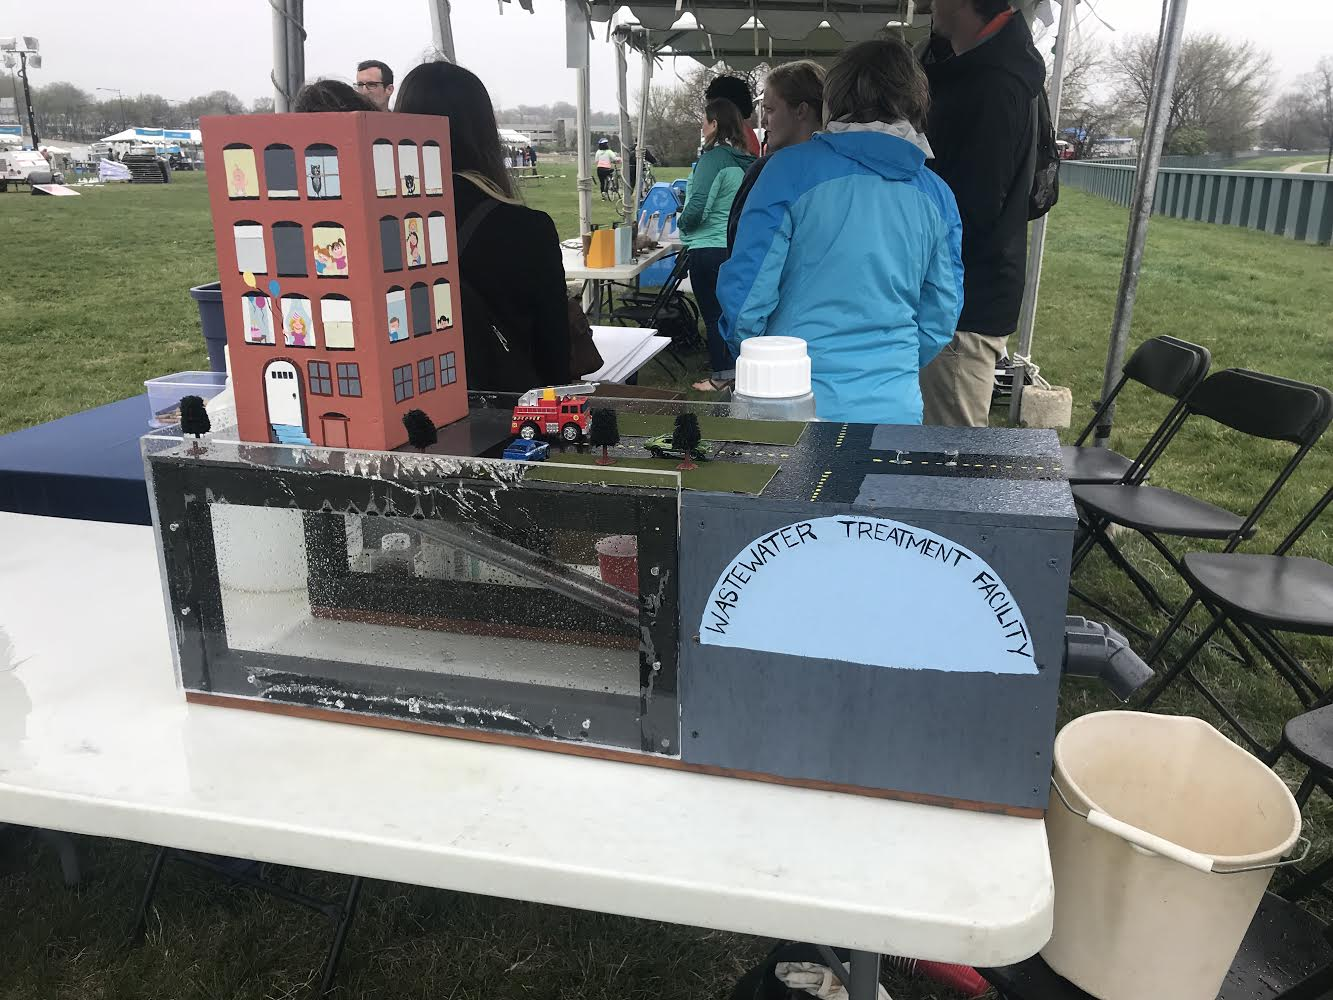 At the 4th annual Anacostia River festival, I used a wastewater treatment plant model to explain the goal of the Tunnel project to local citizens. Photo credit: Samantha Gleich